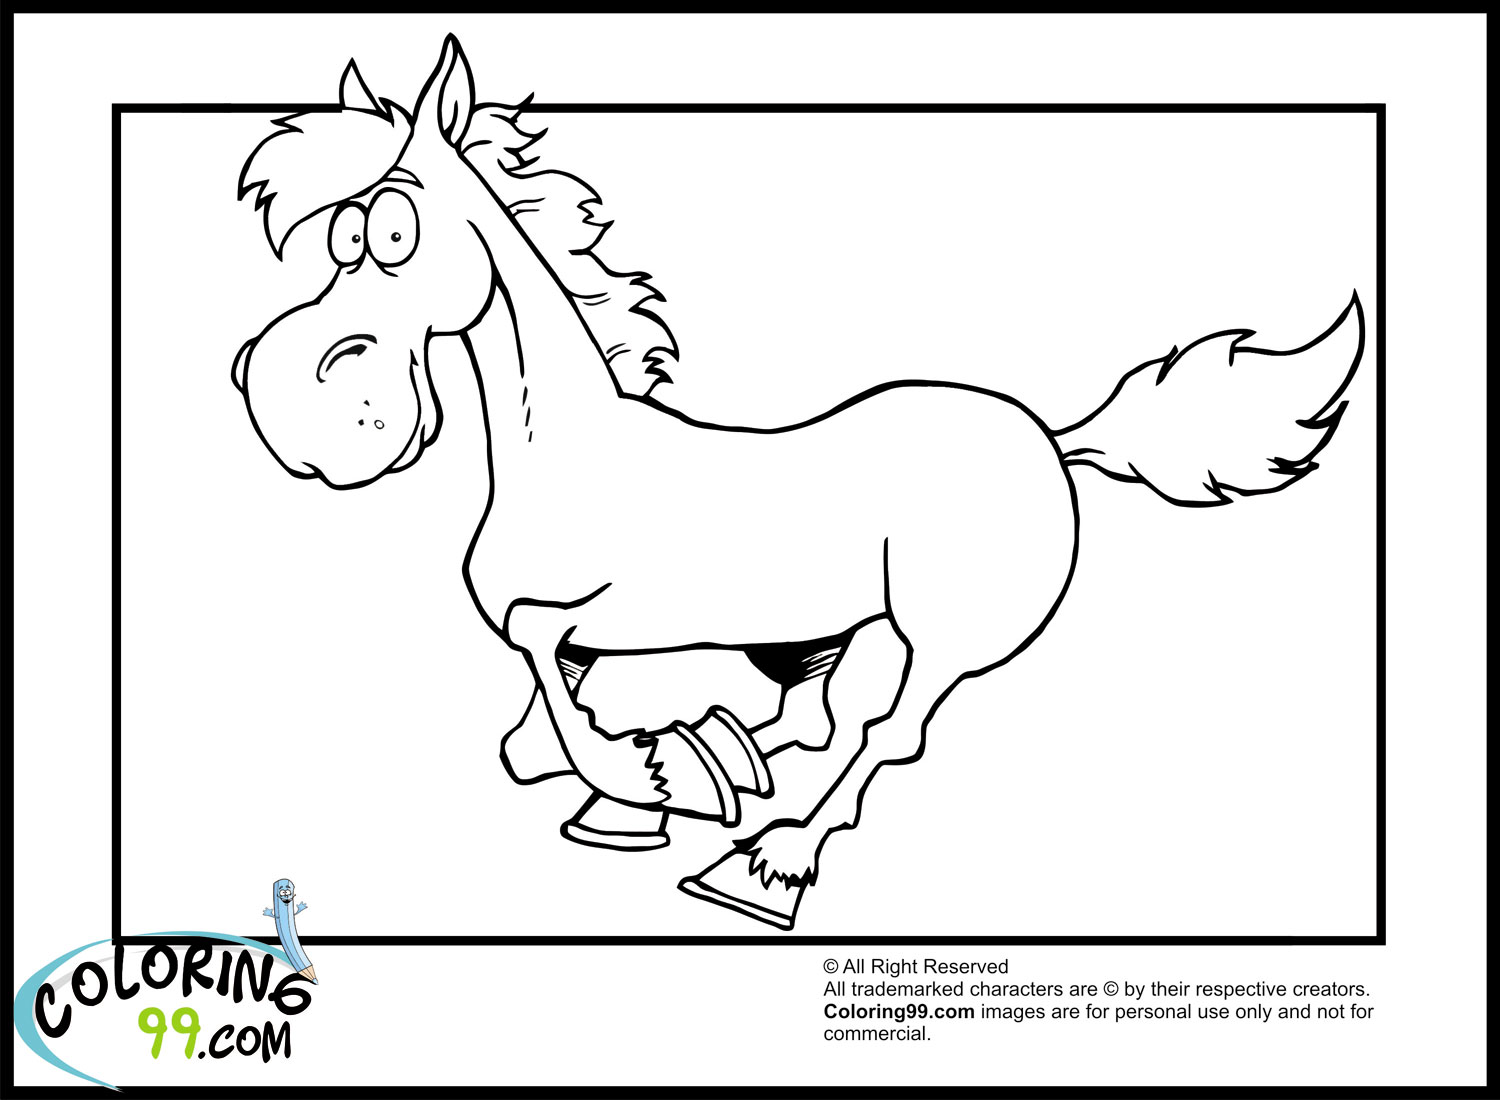 coloring pages of a horse - horse coloring pages team colors